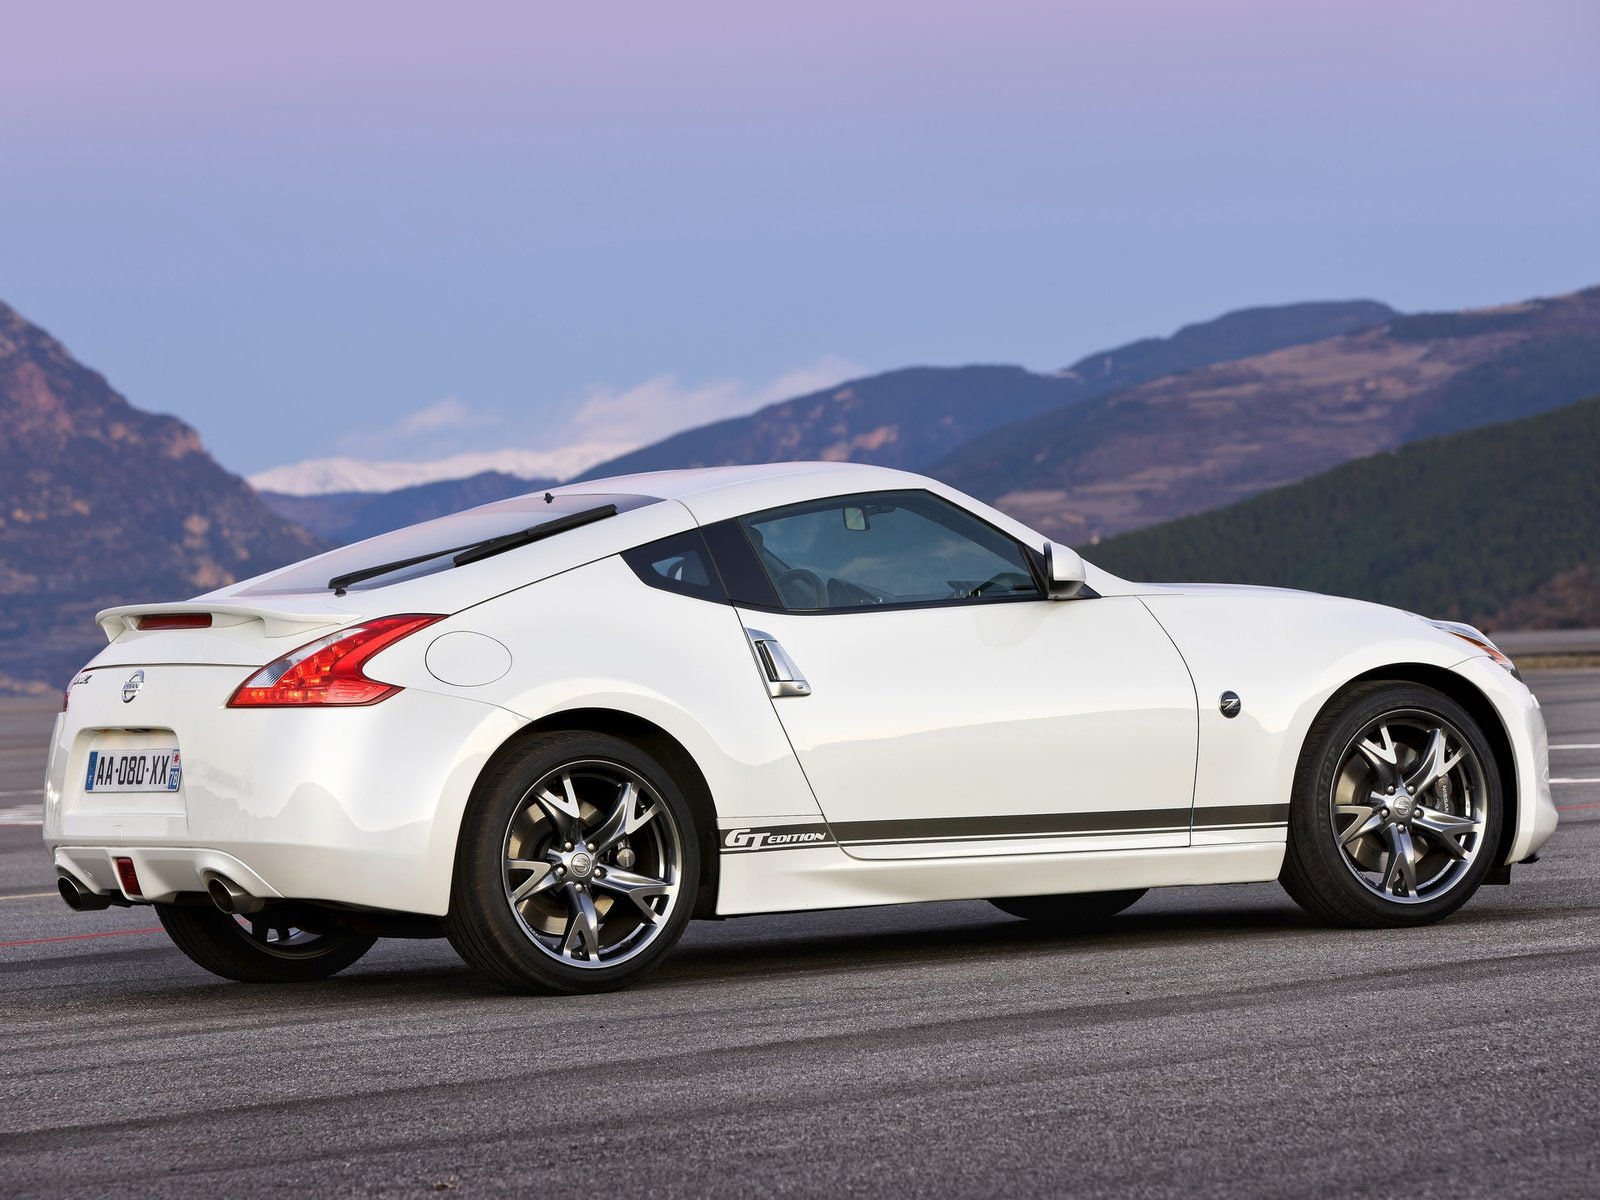 2011 nissan 370z gt edition wallpapers accident lawyers info. Black Bedroom Furniture Sets. Home Design Ideas